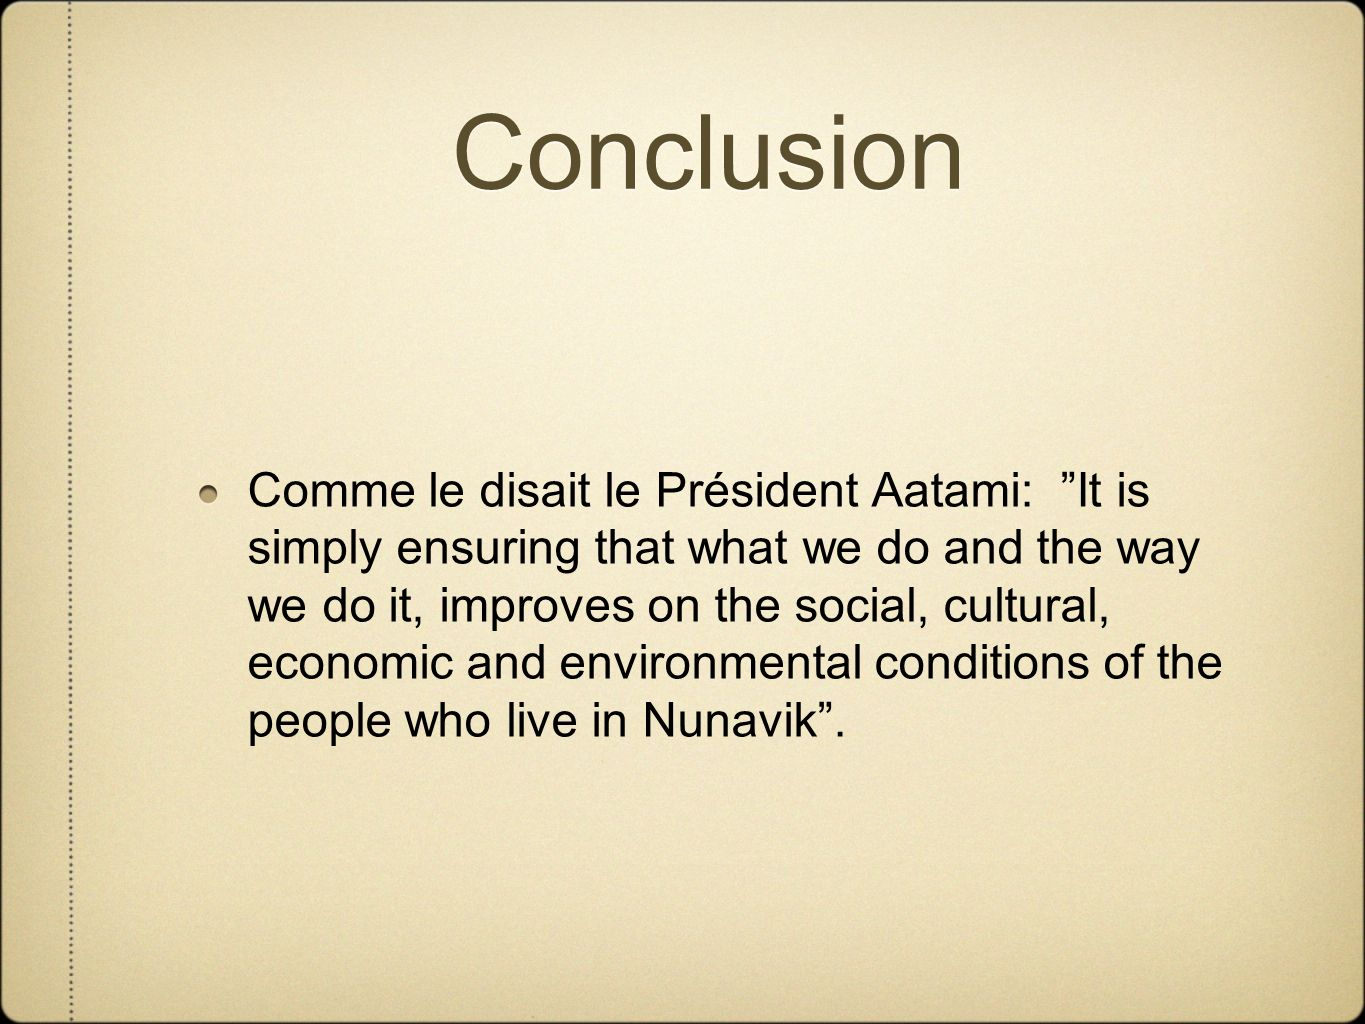 Conclusion Comme le disait le Président Aatami: It is simply ensuring that what we do and the way we do it, improves on the social, cultural, economic